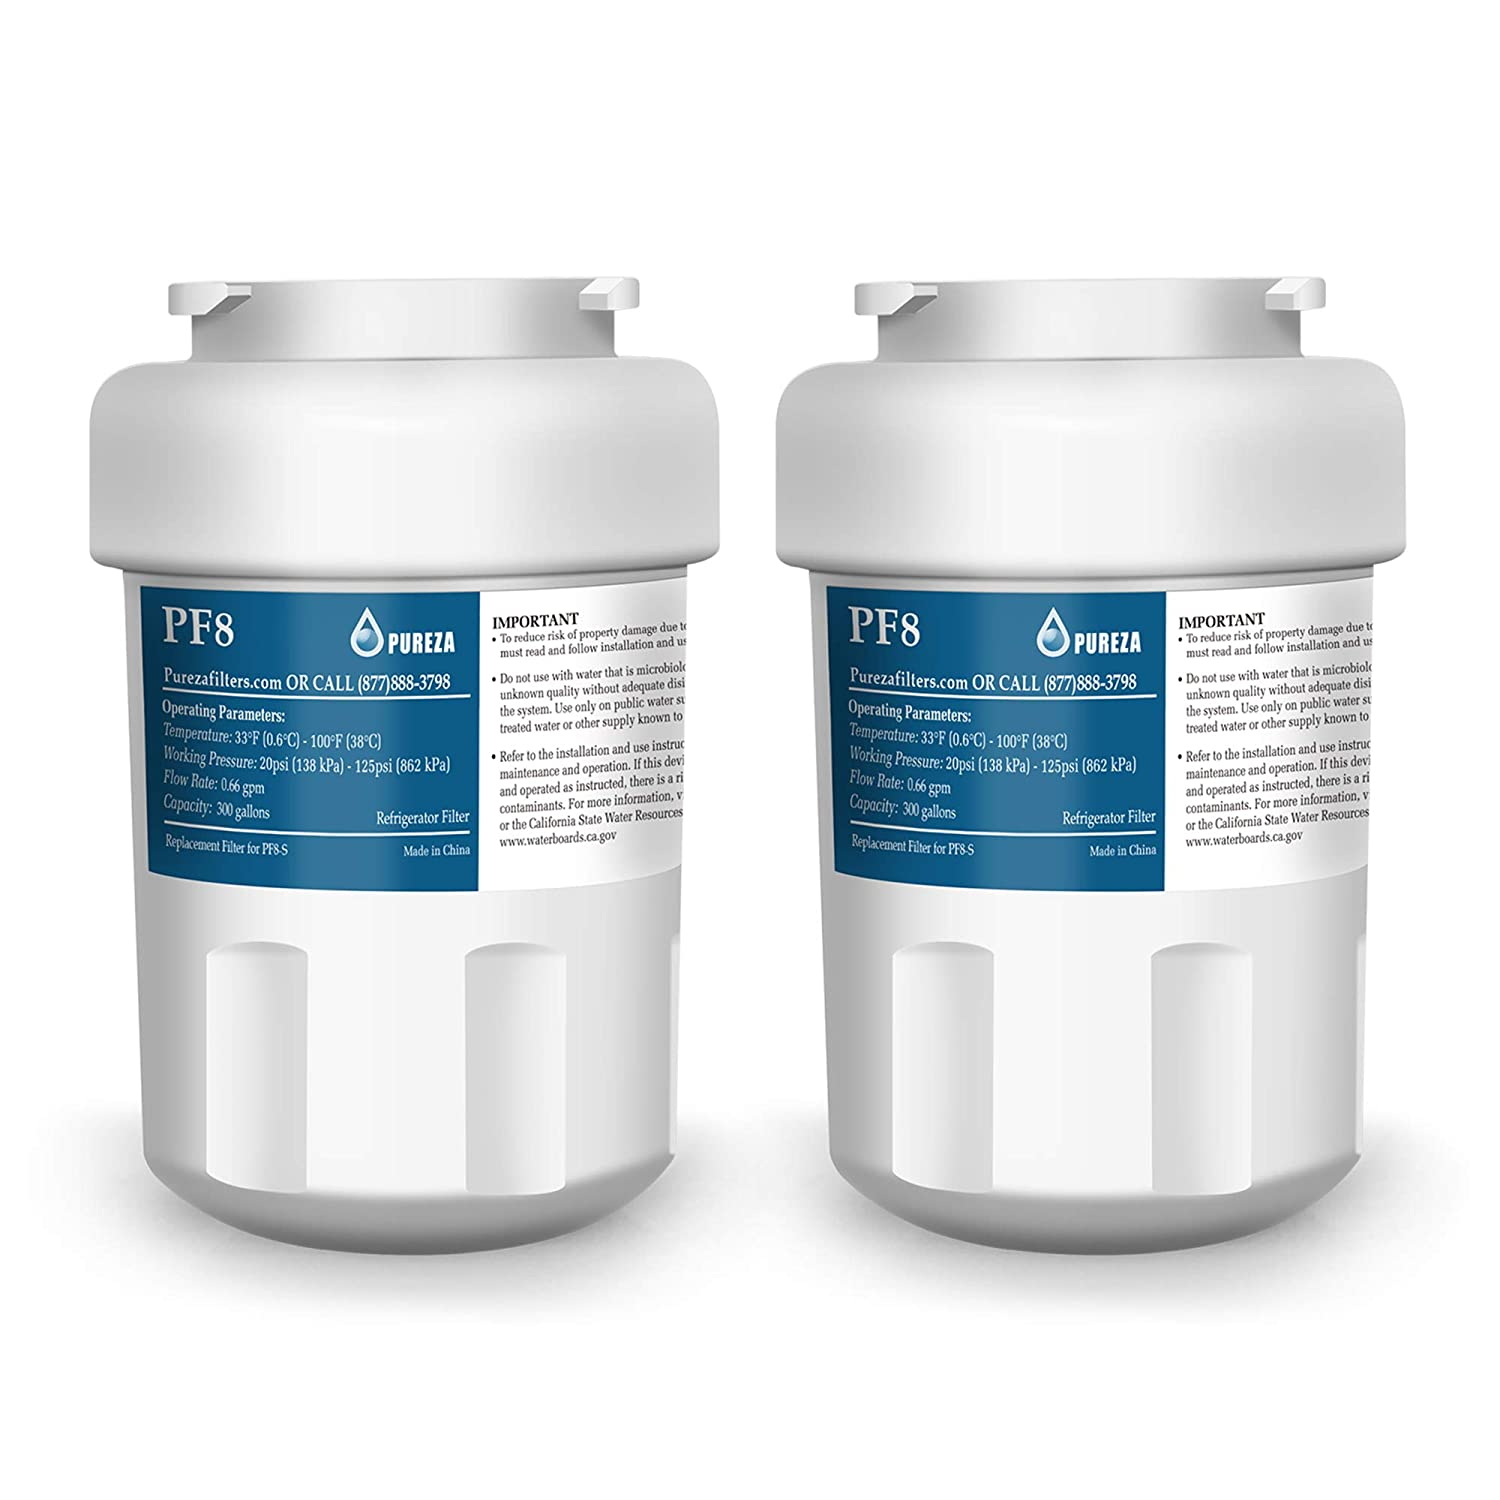 GE MWF Refrigerator Water Filter compatible GAFF GWF01-B GWF06 and Kenmore 9991 46-9991 469991 by pureza (2PACK)